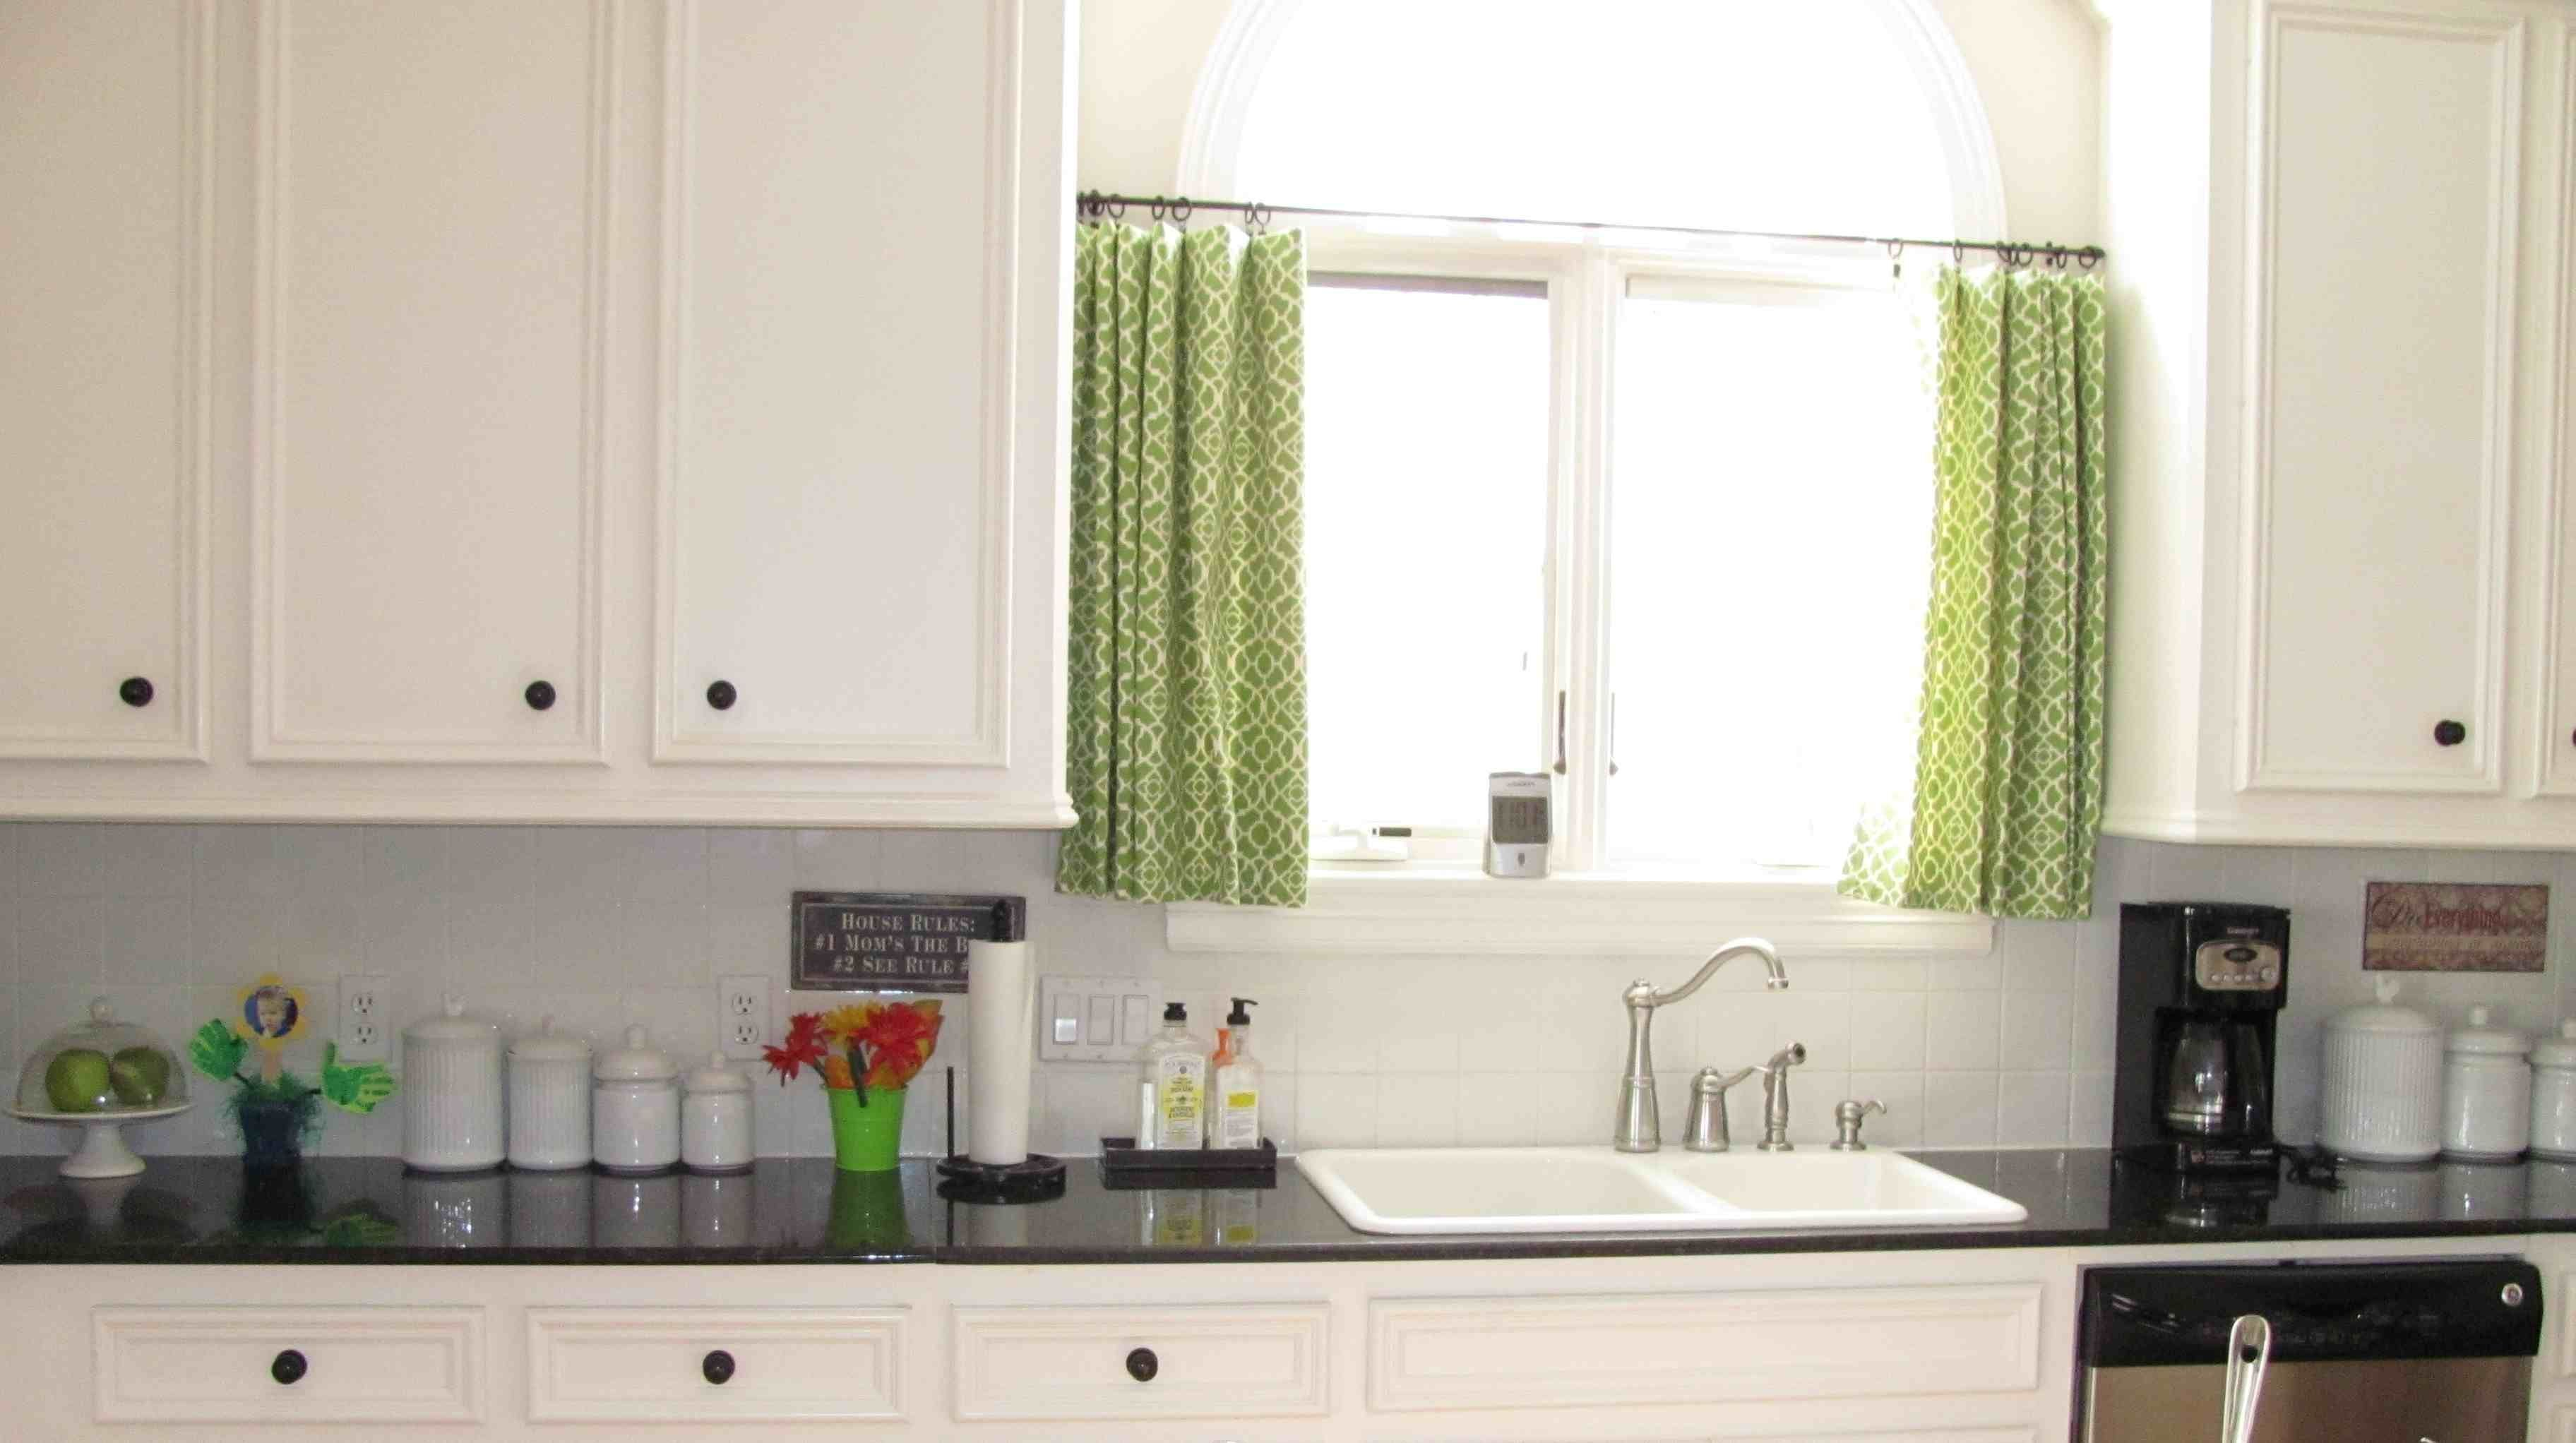 Curtains for long kitchen windows realtagfo pinterest